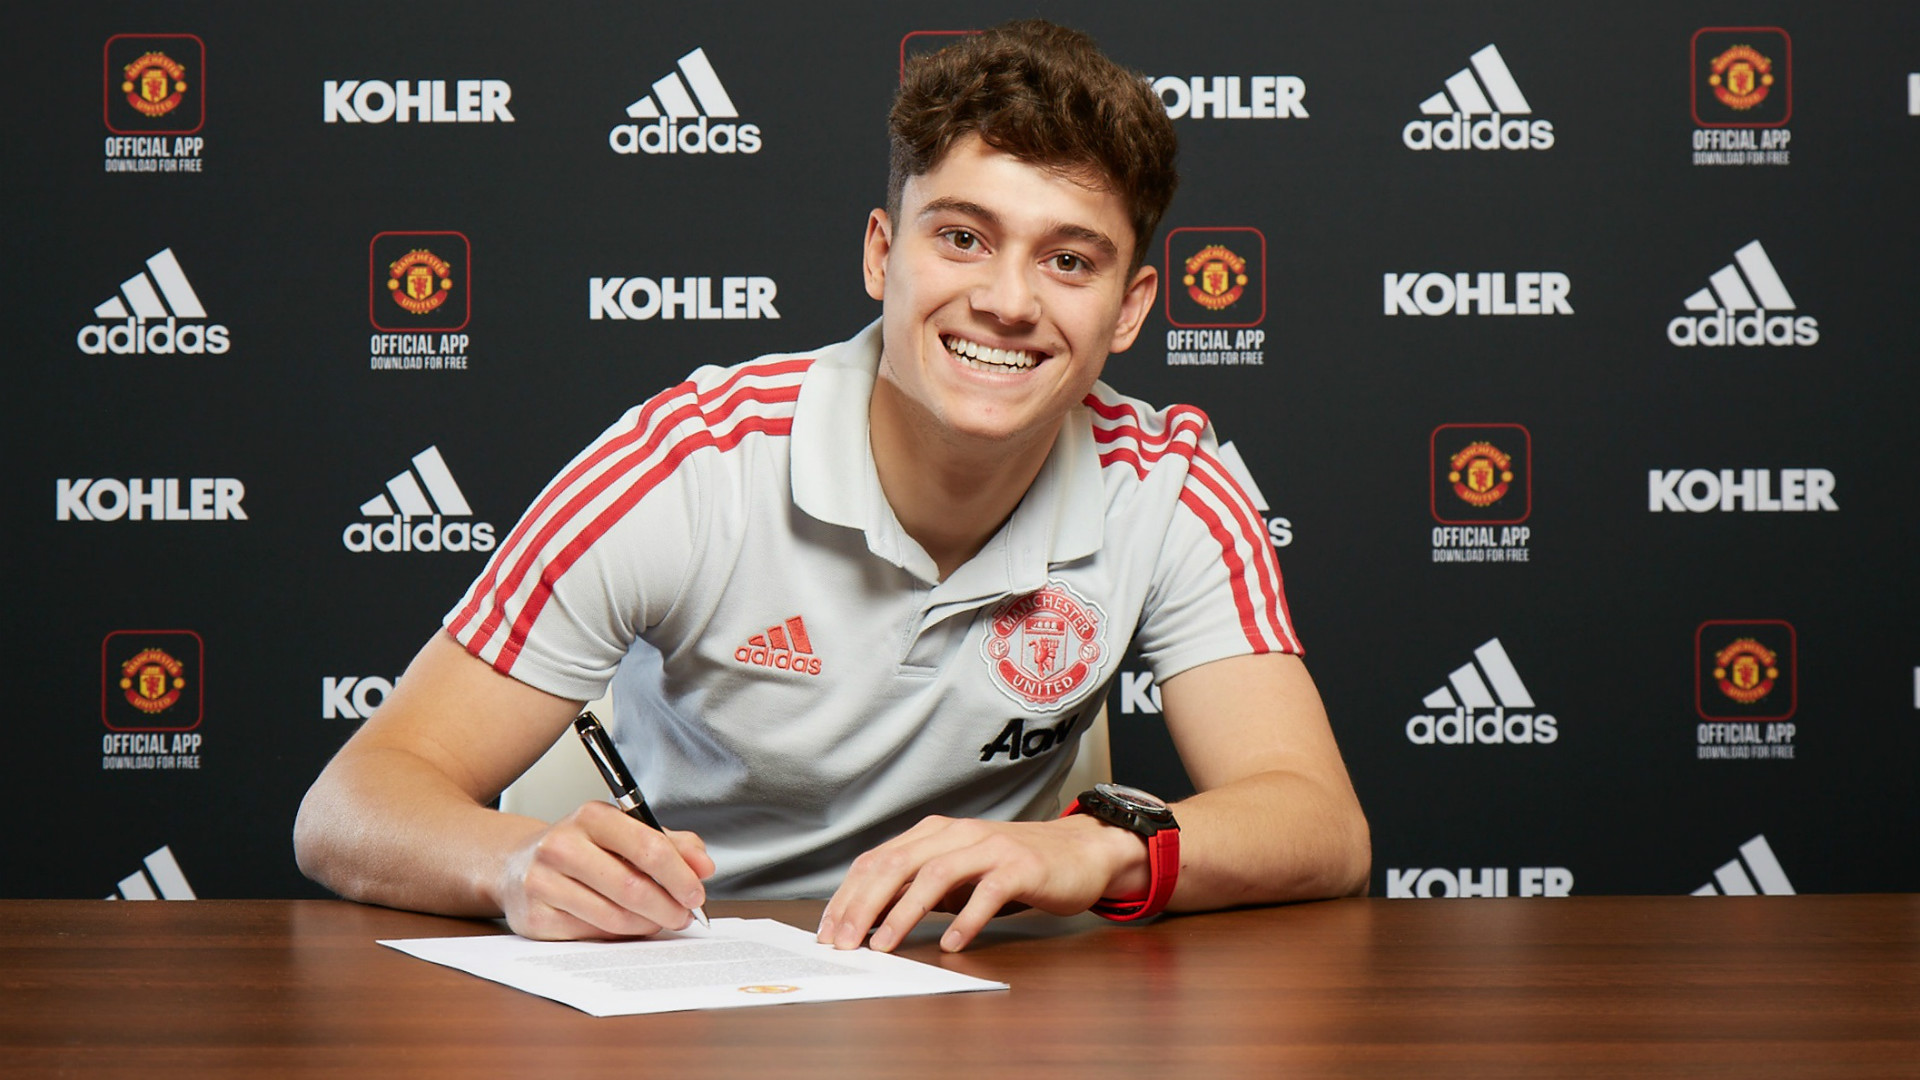 Welsh winger Daniel James completes his move from Swansea to Manchester United